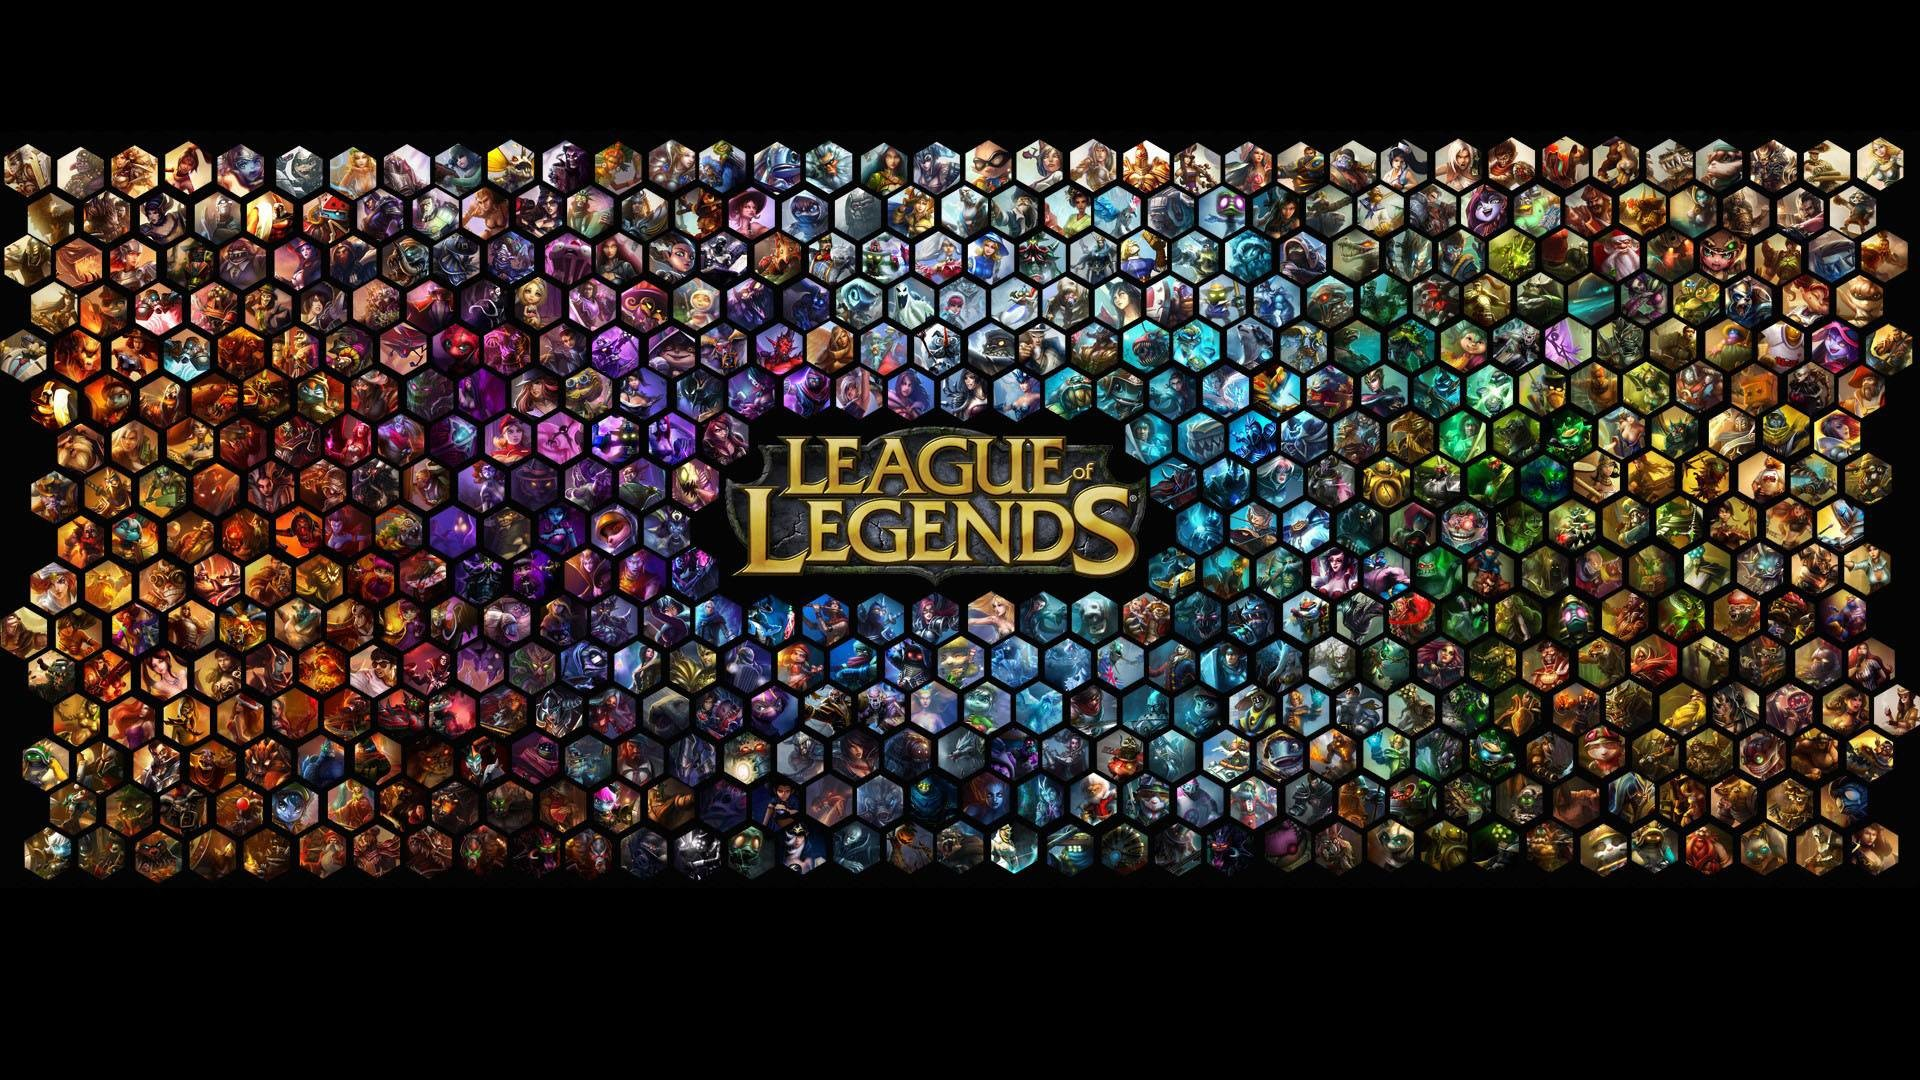 league of legends wallpaper hd – | Images And Wallpapers .